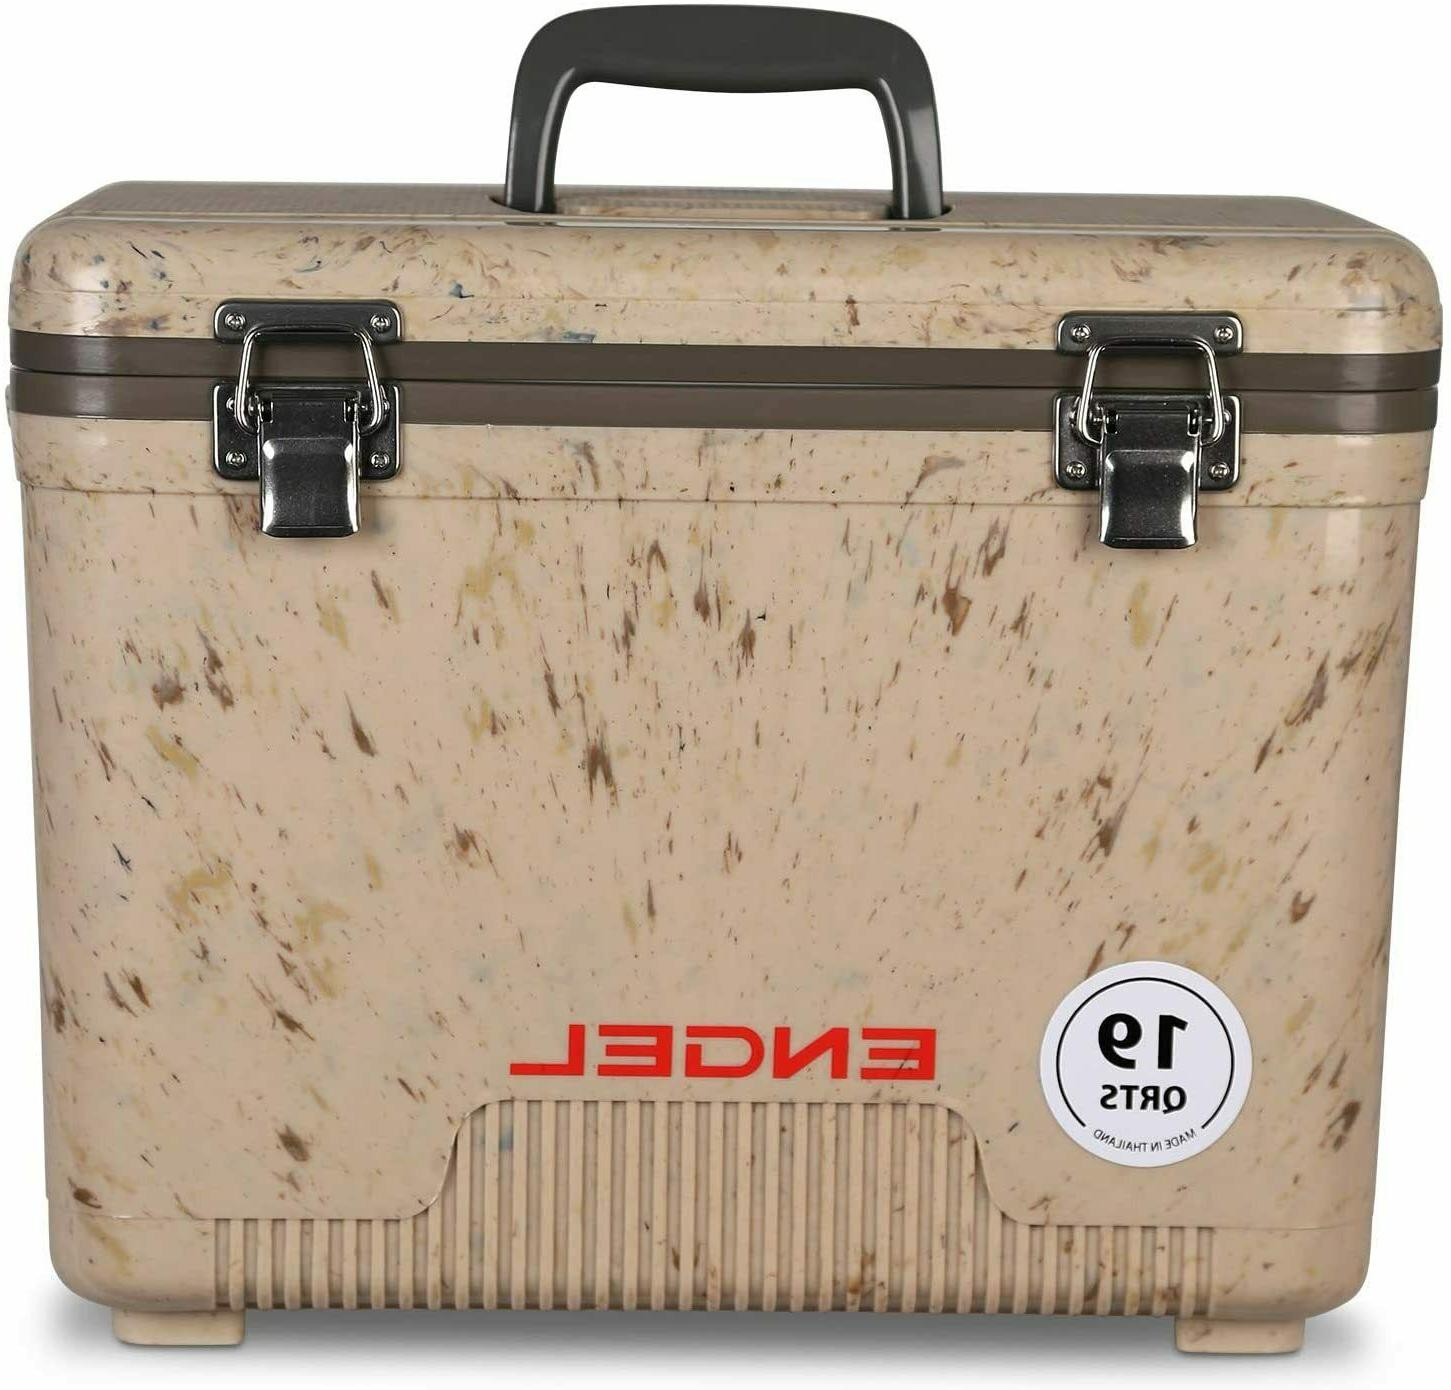 Cooler/ Dry Box 19 Qt White Camouflage by ENGEL with Double